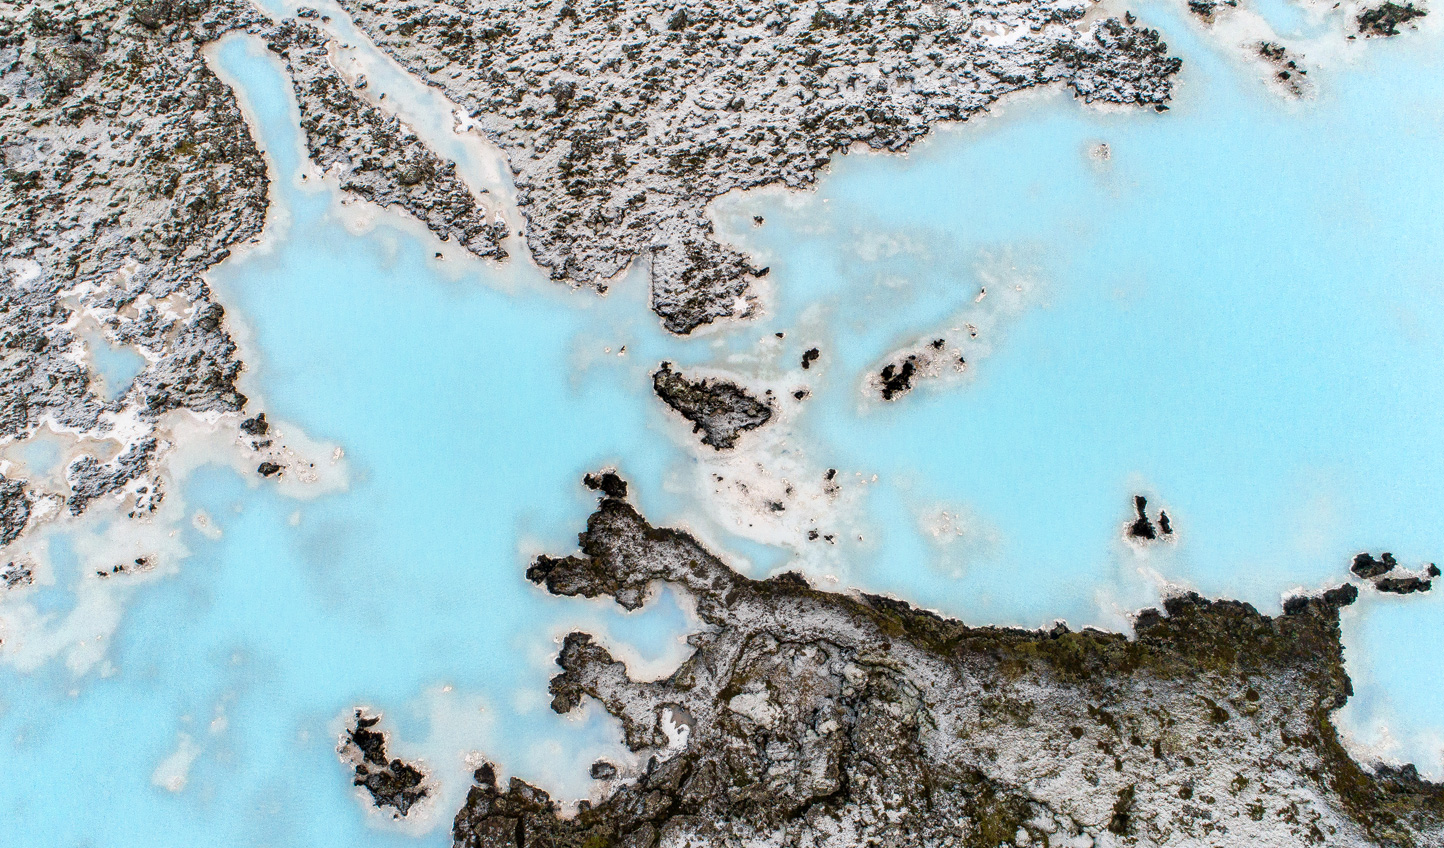 See Iceland's landscapes from the skies